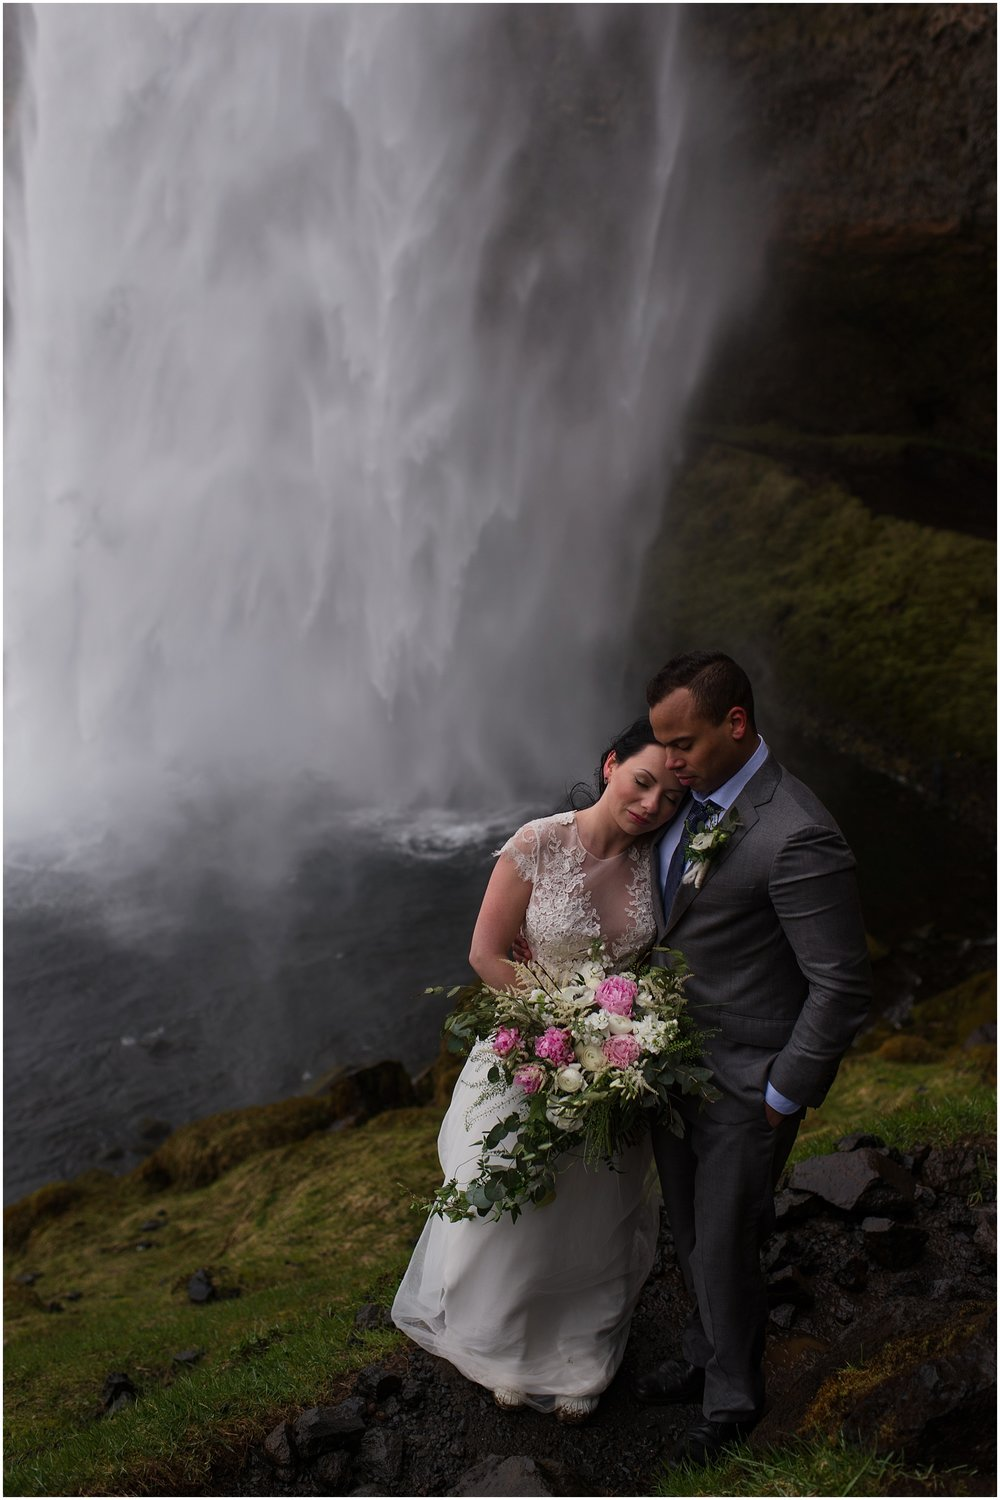 Hannah Leigh Photography Seljalandsfoss Iceland Elopement_2592.jpg